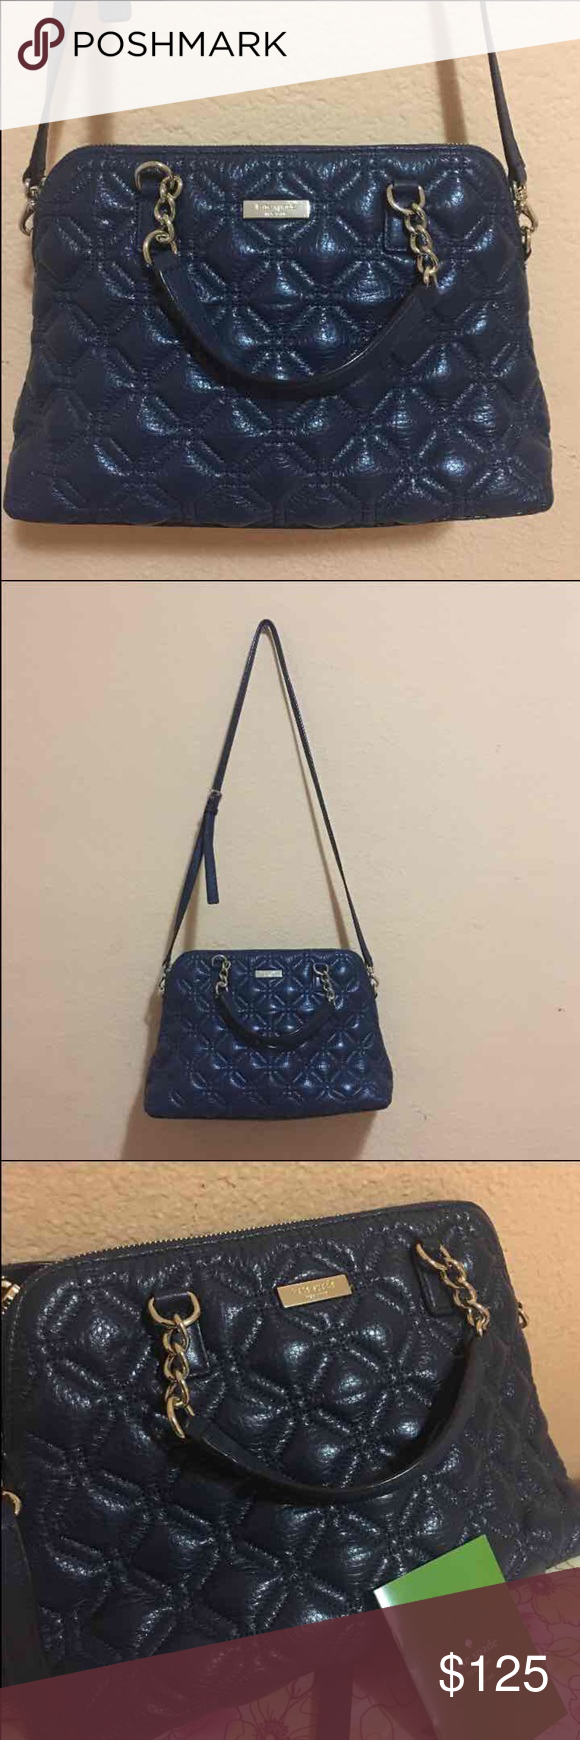 Kate Spade shoulder bag Authentic, used once like new condition. Navy blue color , quilted design. Has inner zipper pocket and 2 pocket slots on the other side. Medium size bag 9in height, 13in width. kate spade Bags Satchels